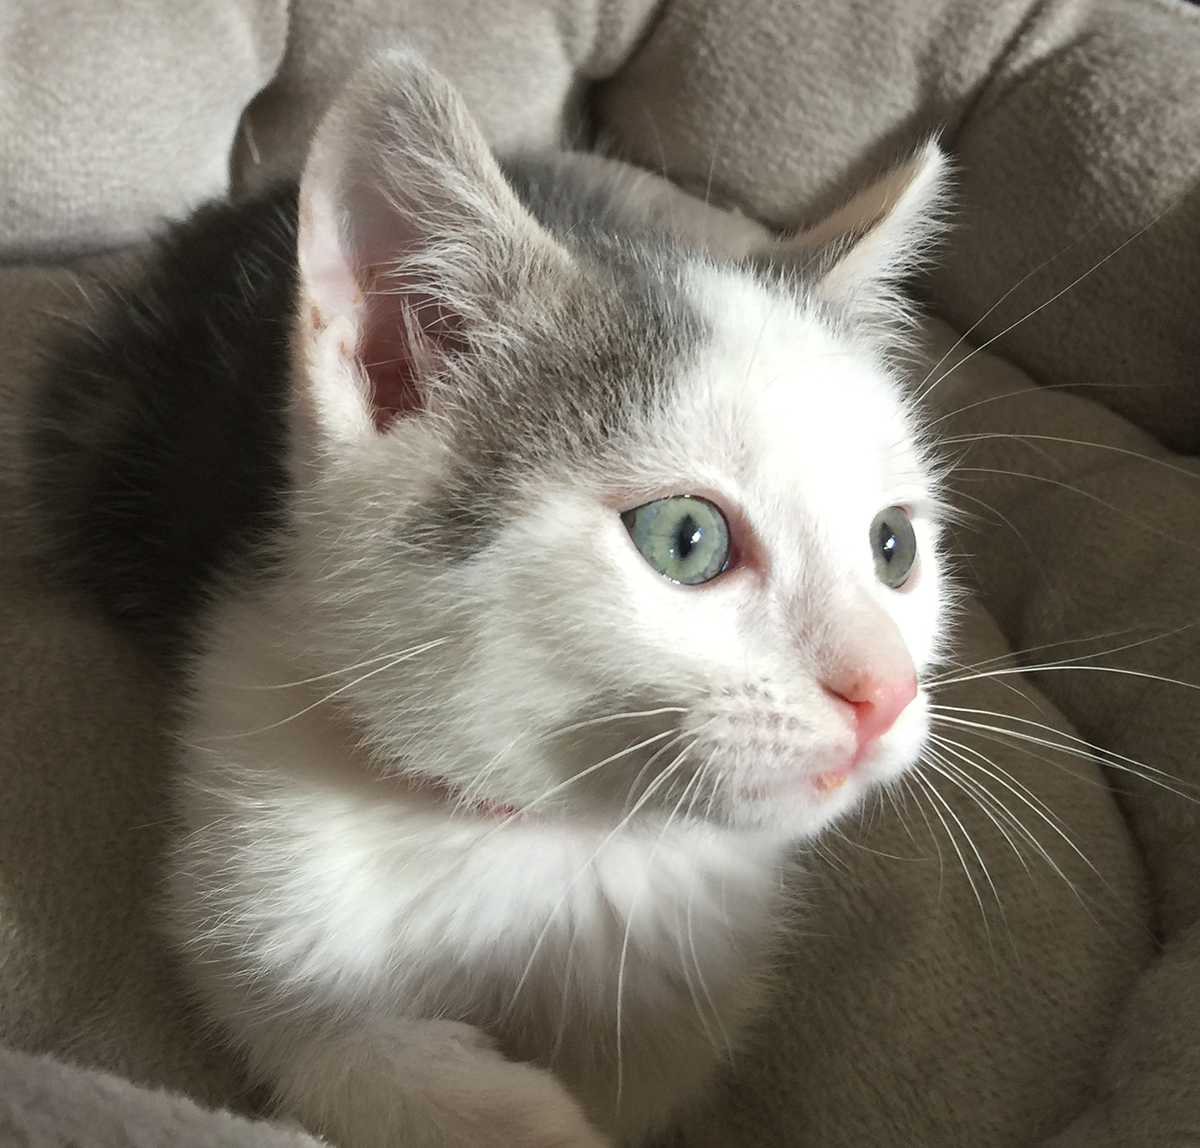 Ed - FAS foster kitten June 2018